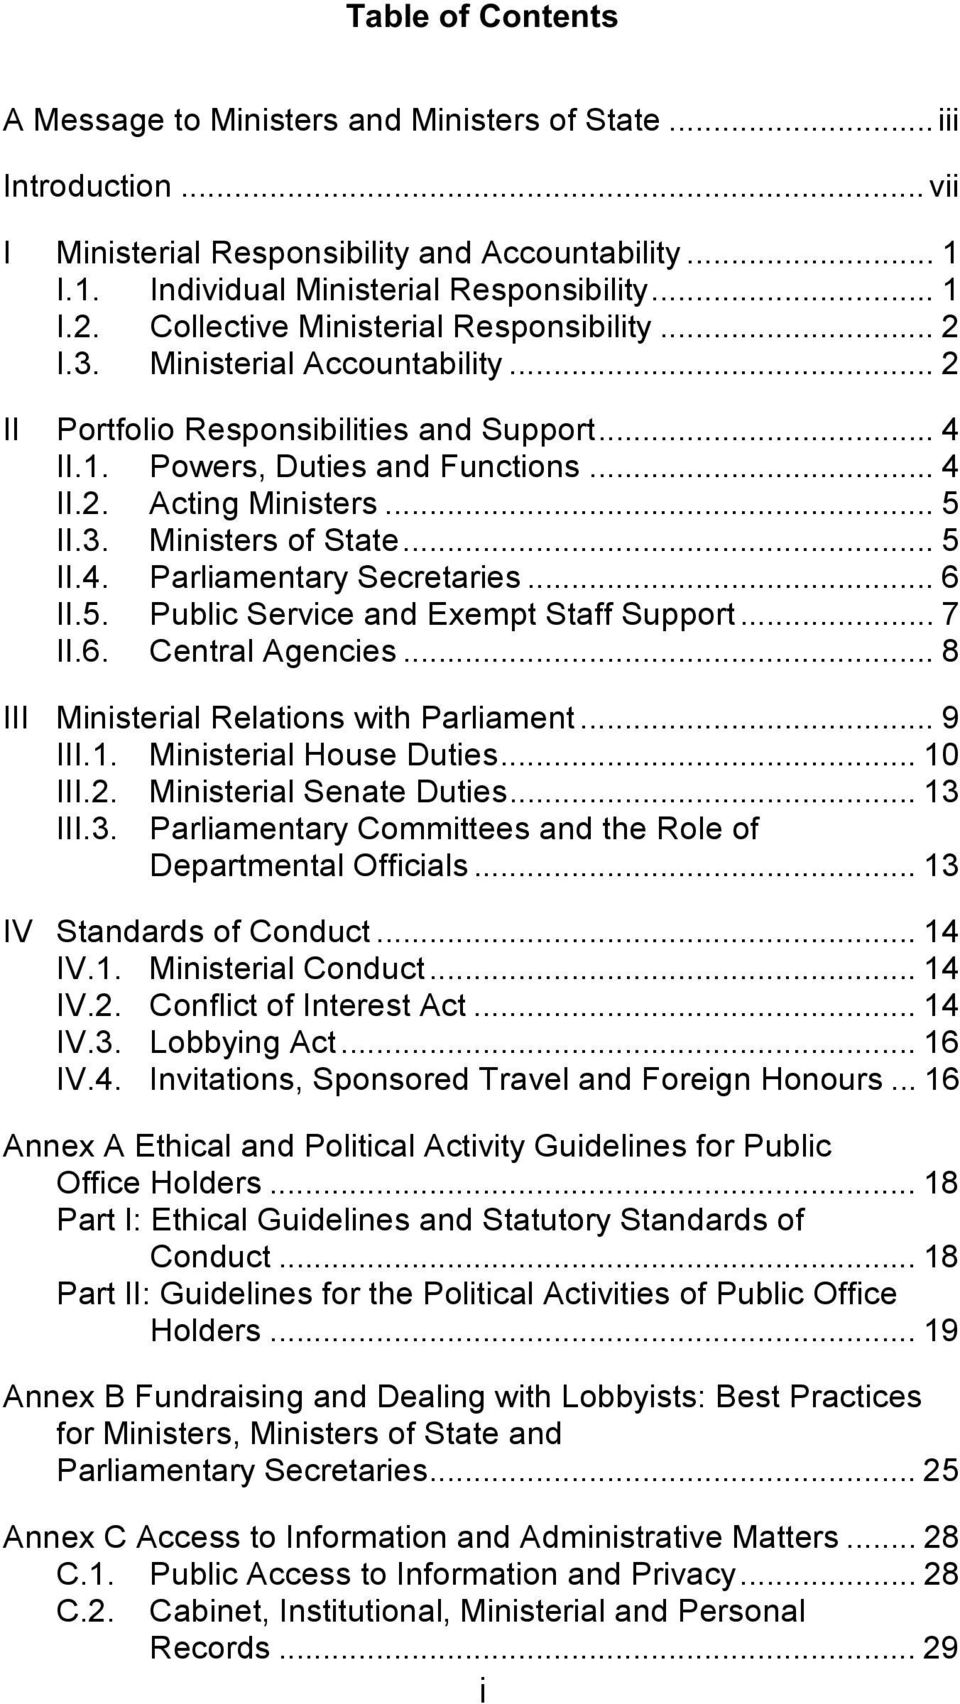 .. 5 II.4. Parliamentary Secretaries... 6 II.5. Public Service and Exempt Staff Support... 7 II.6. Central Agencies... 8 III Ministerial Relations with Parliament... 9 III.1. Ministerial House Duties.